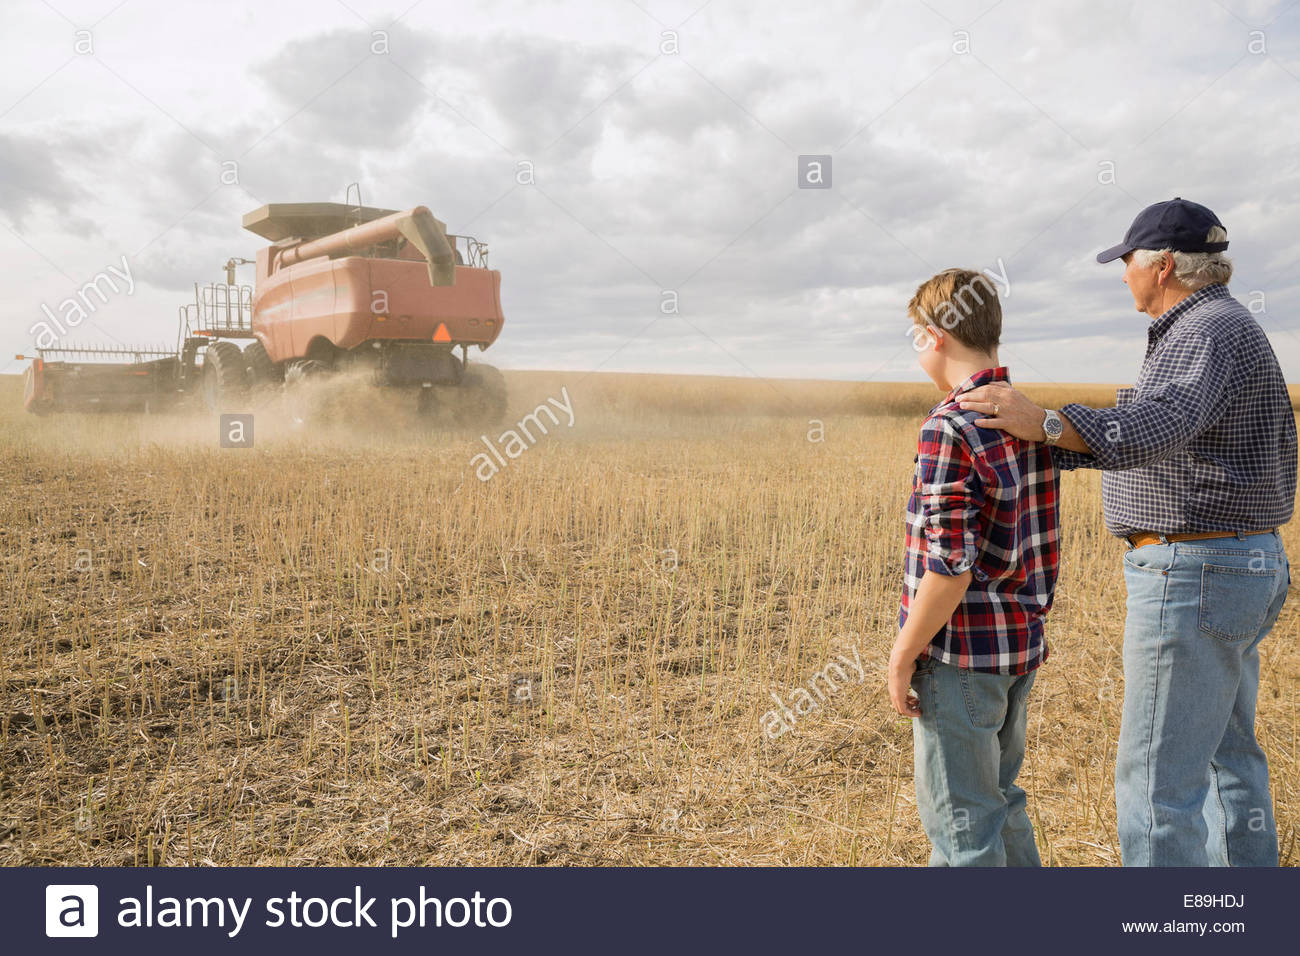 Grandfather and grandson watching combine harvester in field - Stock Image